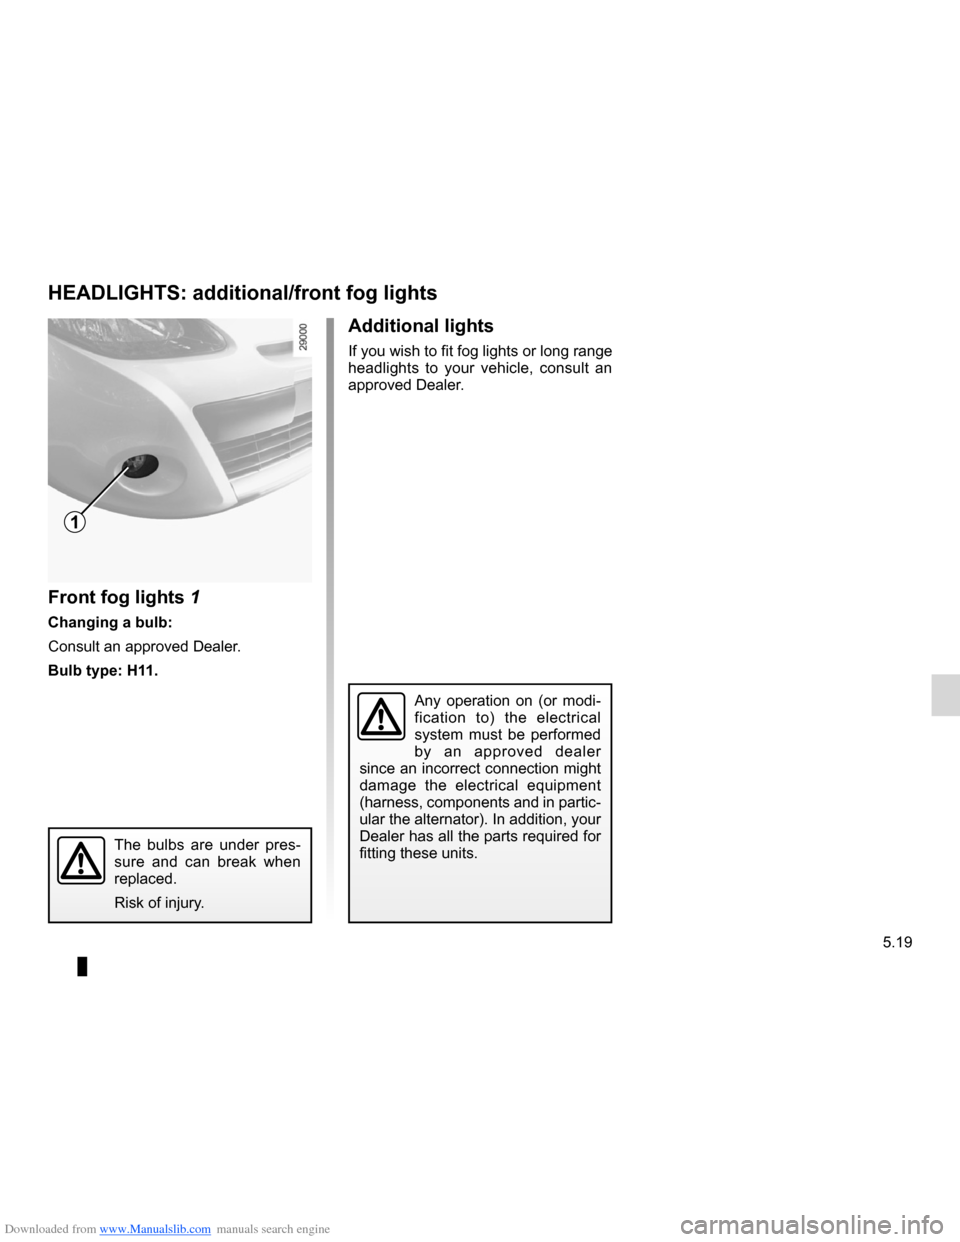 RENAULT CLIO 2012 X85 / 3.G Owners Manual, Page 211